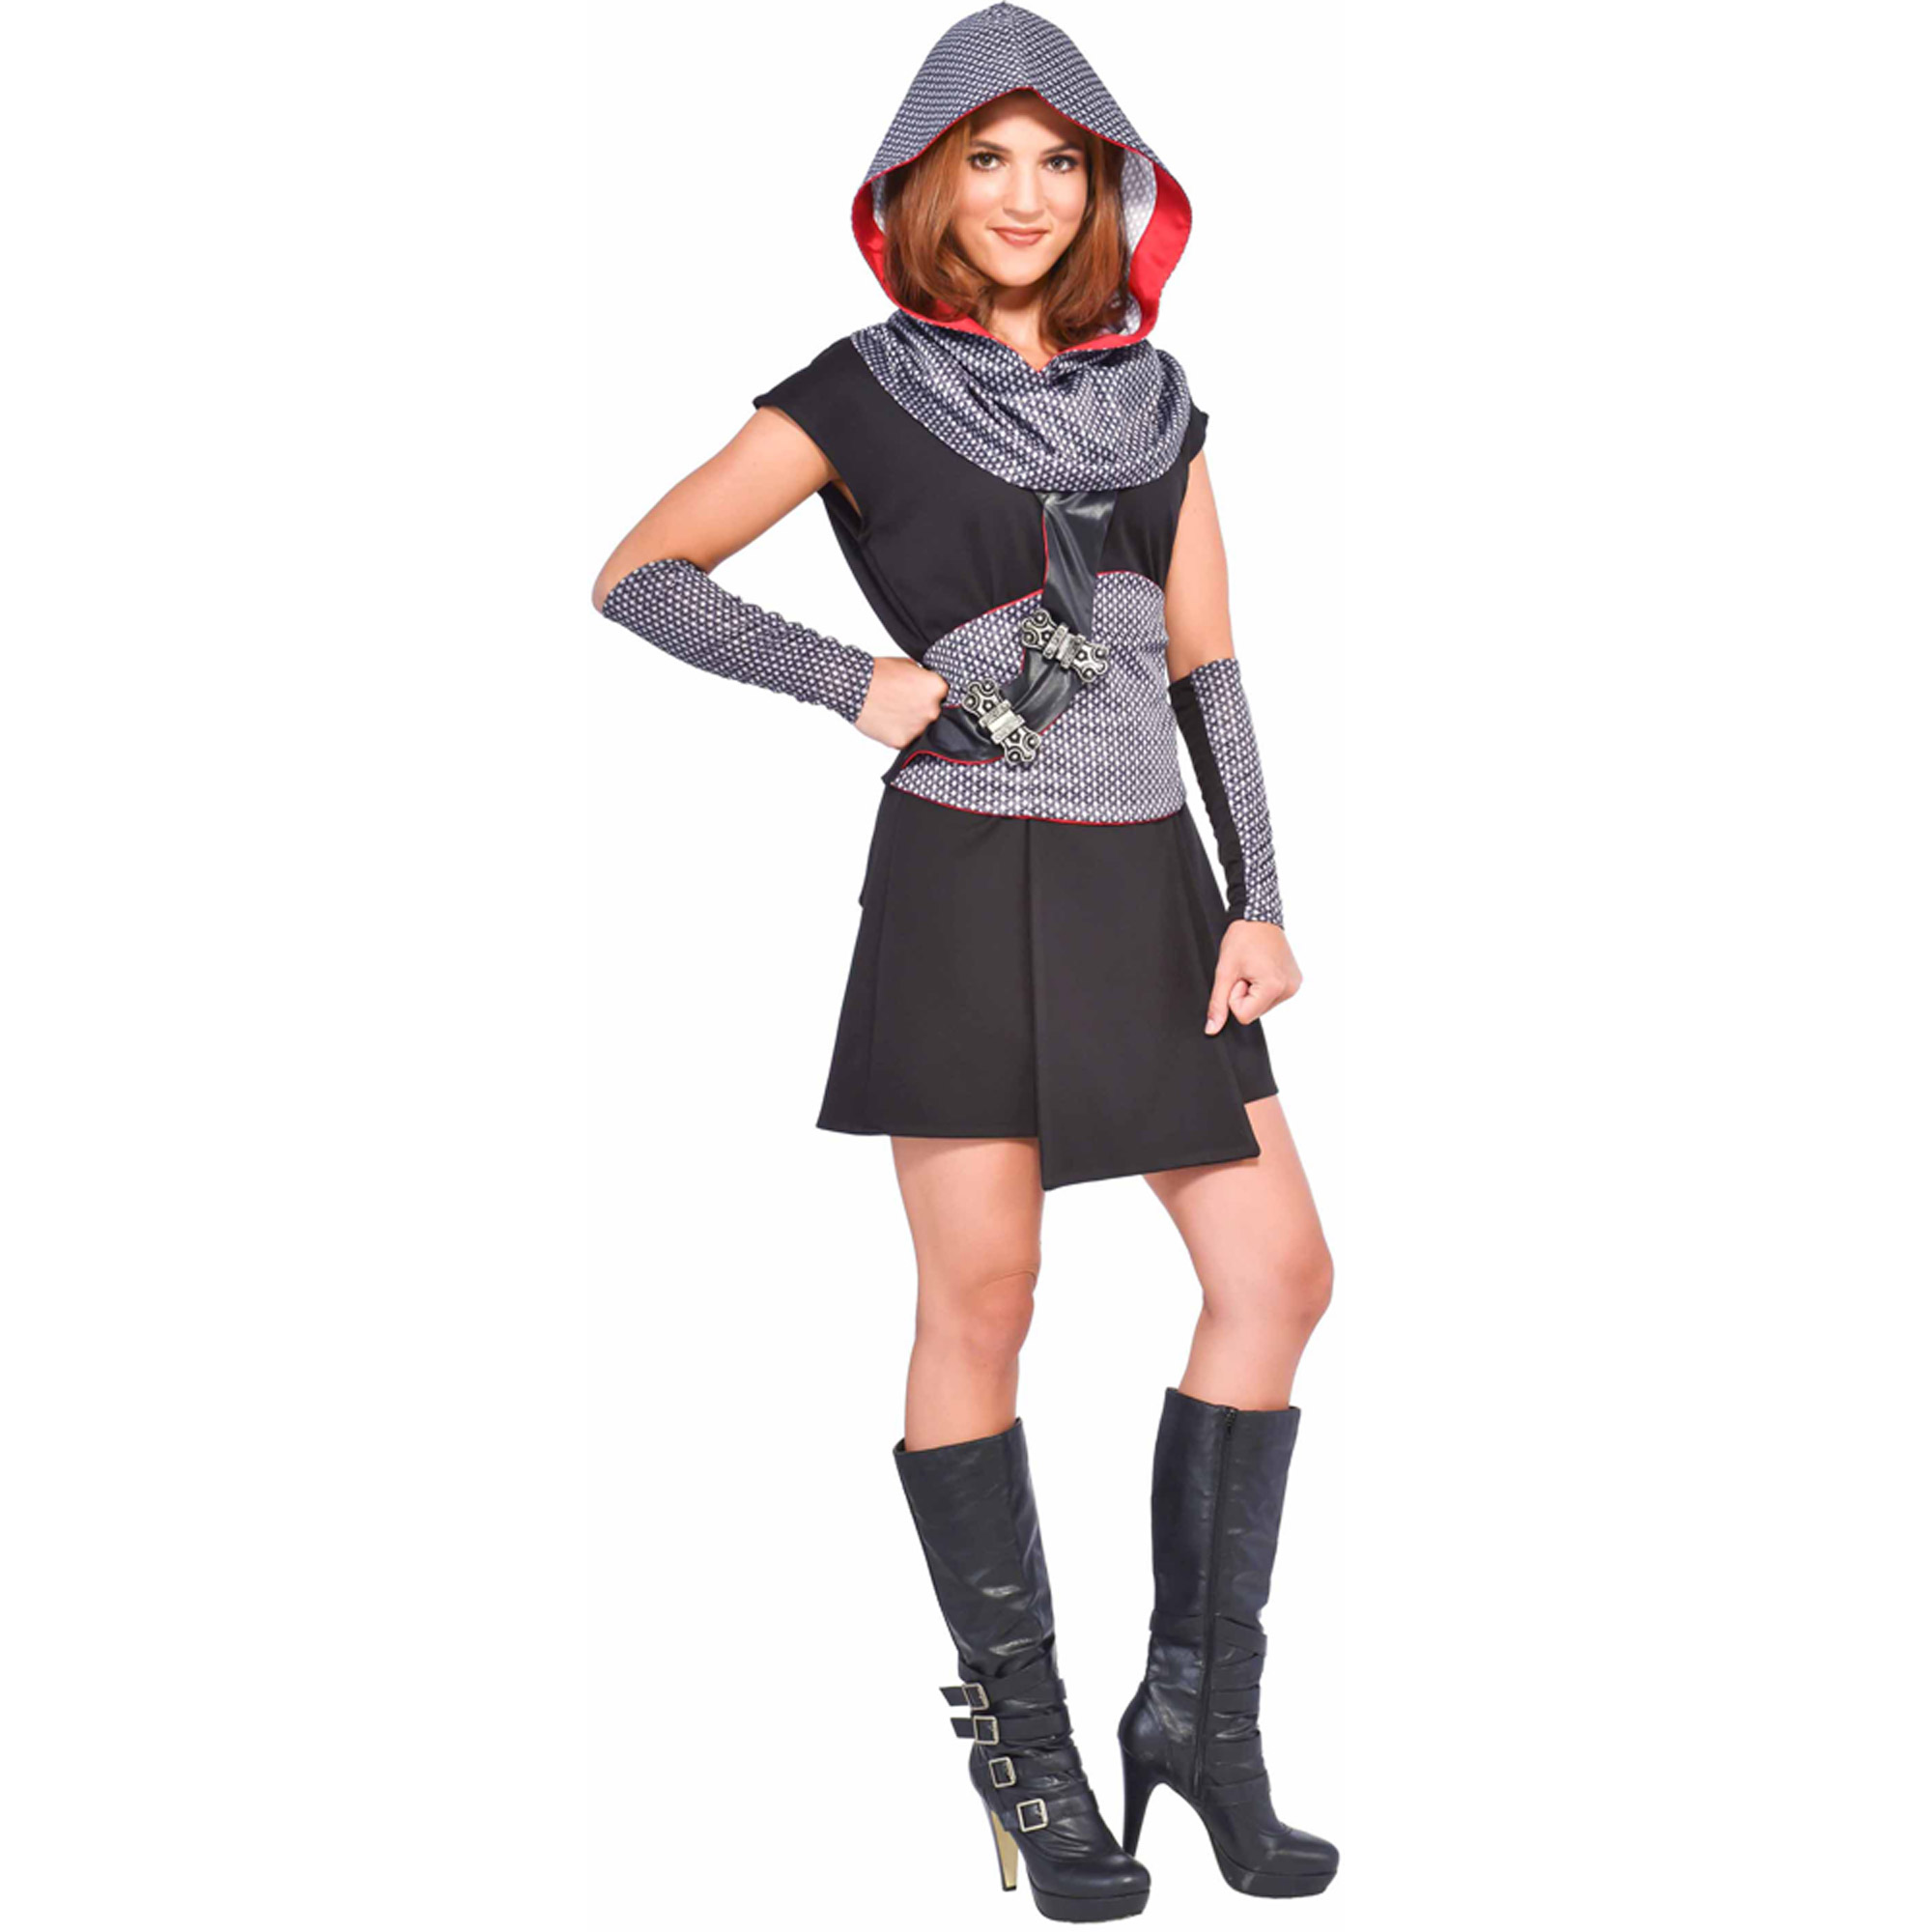 crusader women's adult halloween dress up / role play costume